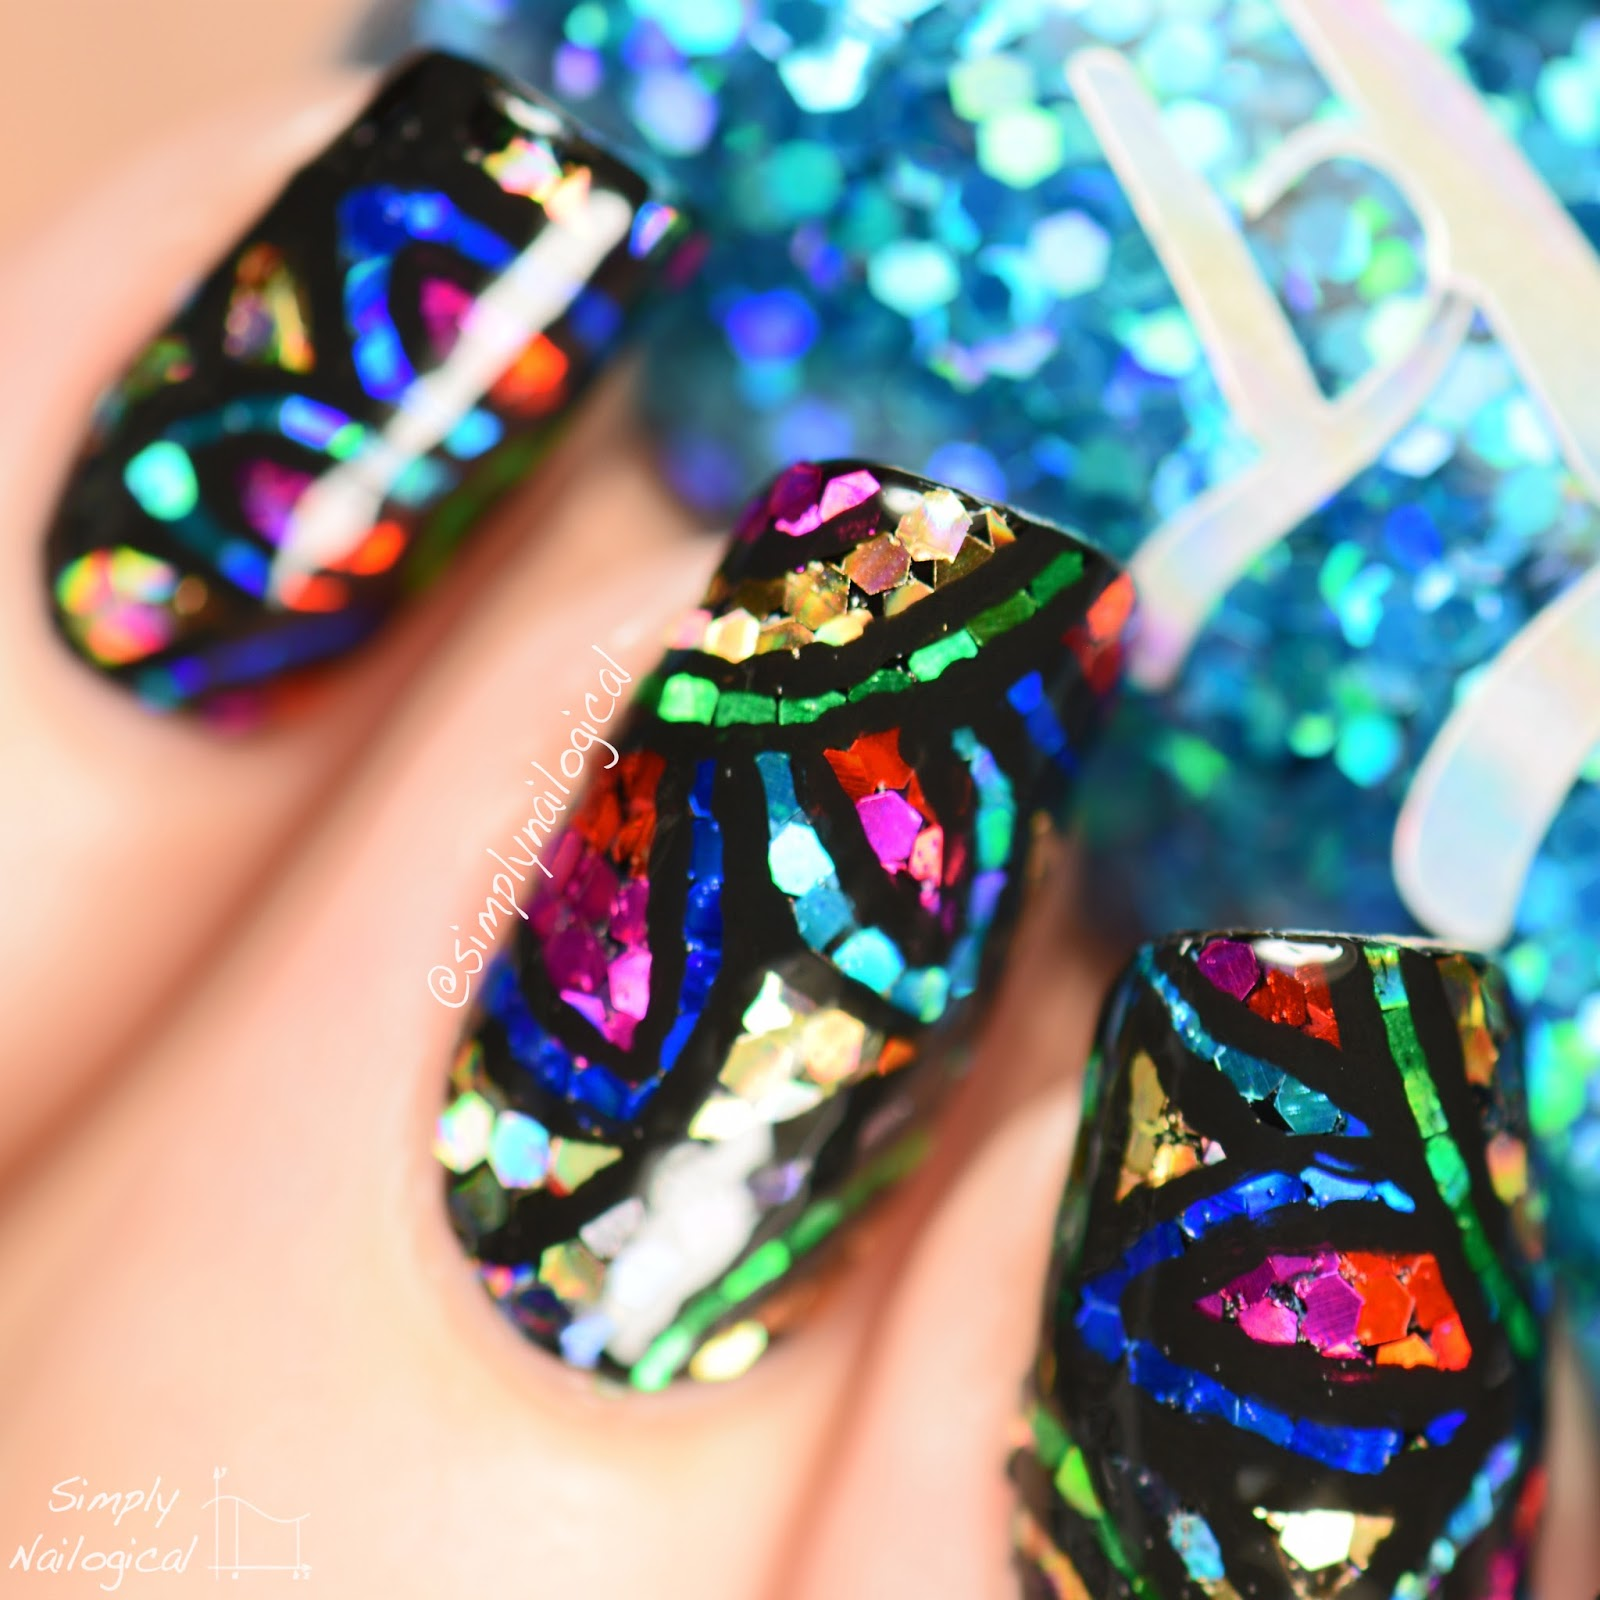 Simply Nailogical: Stained glass glitter placement + easy removal!